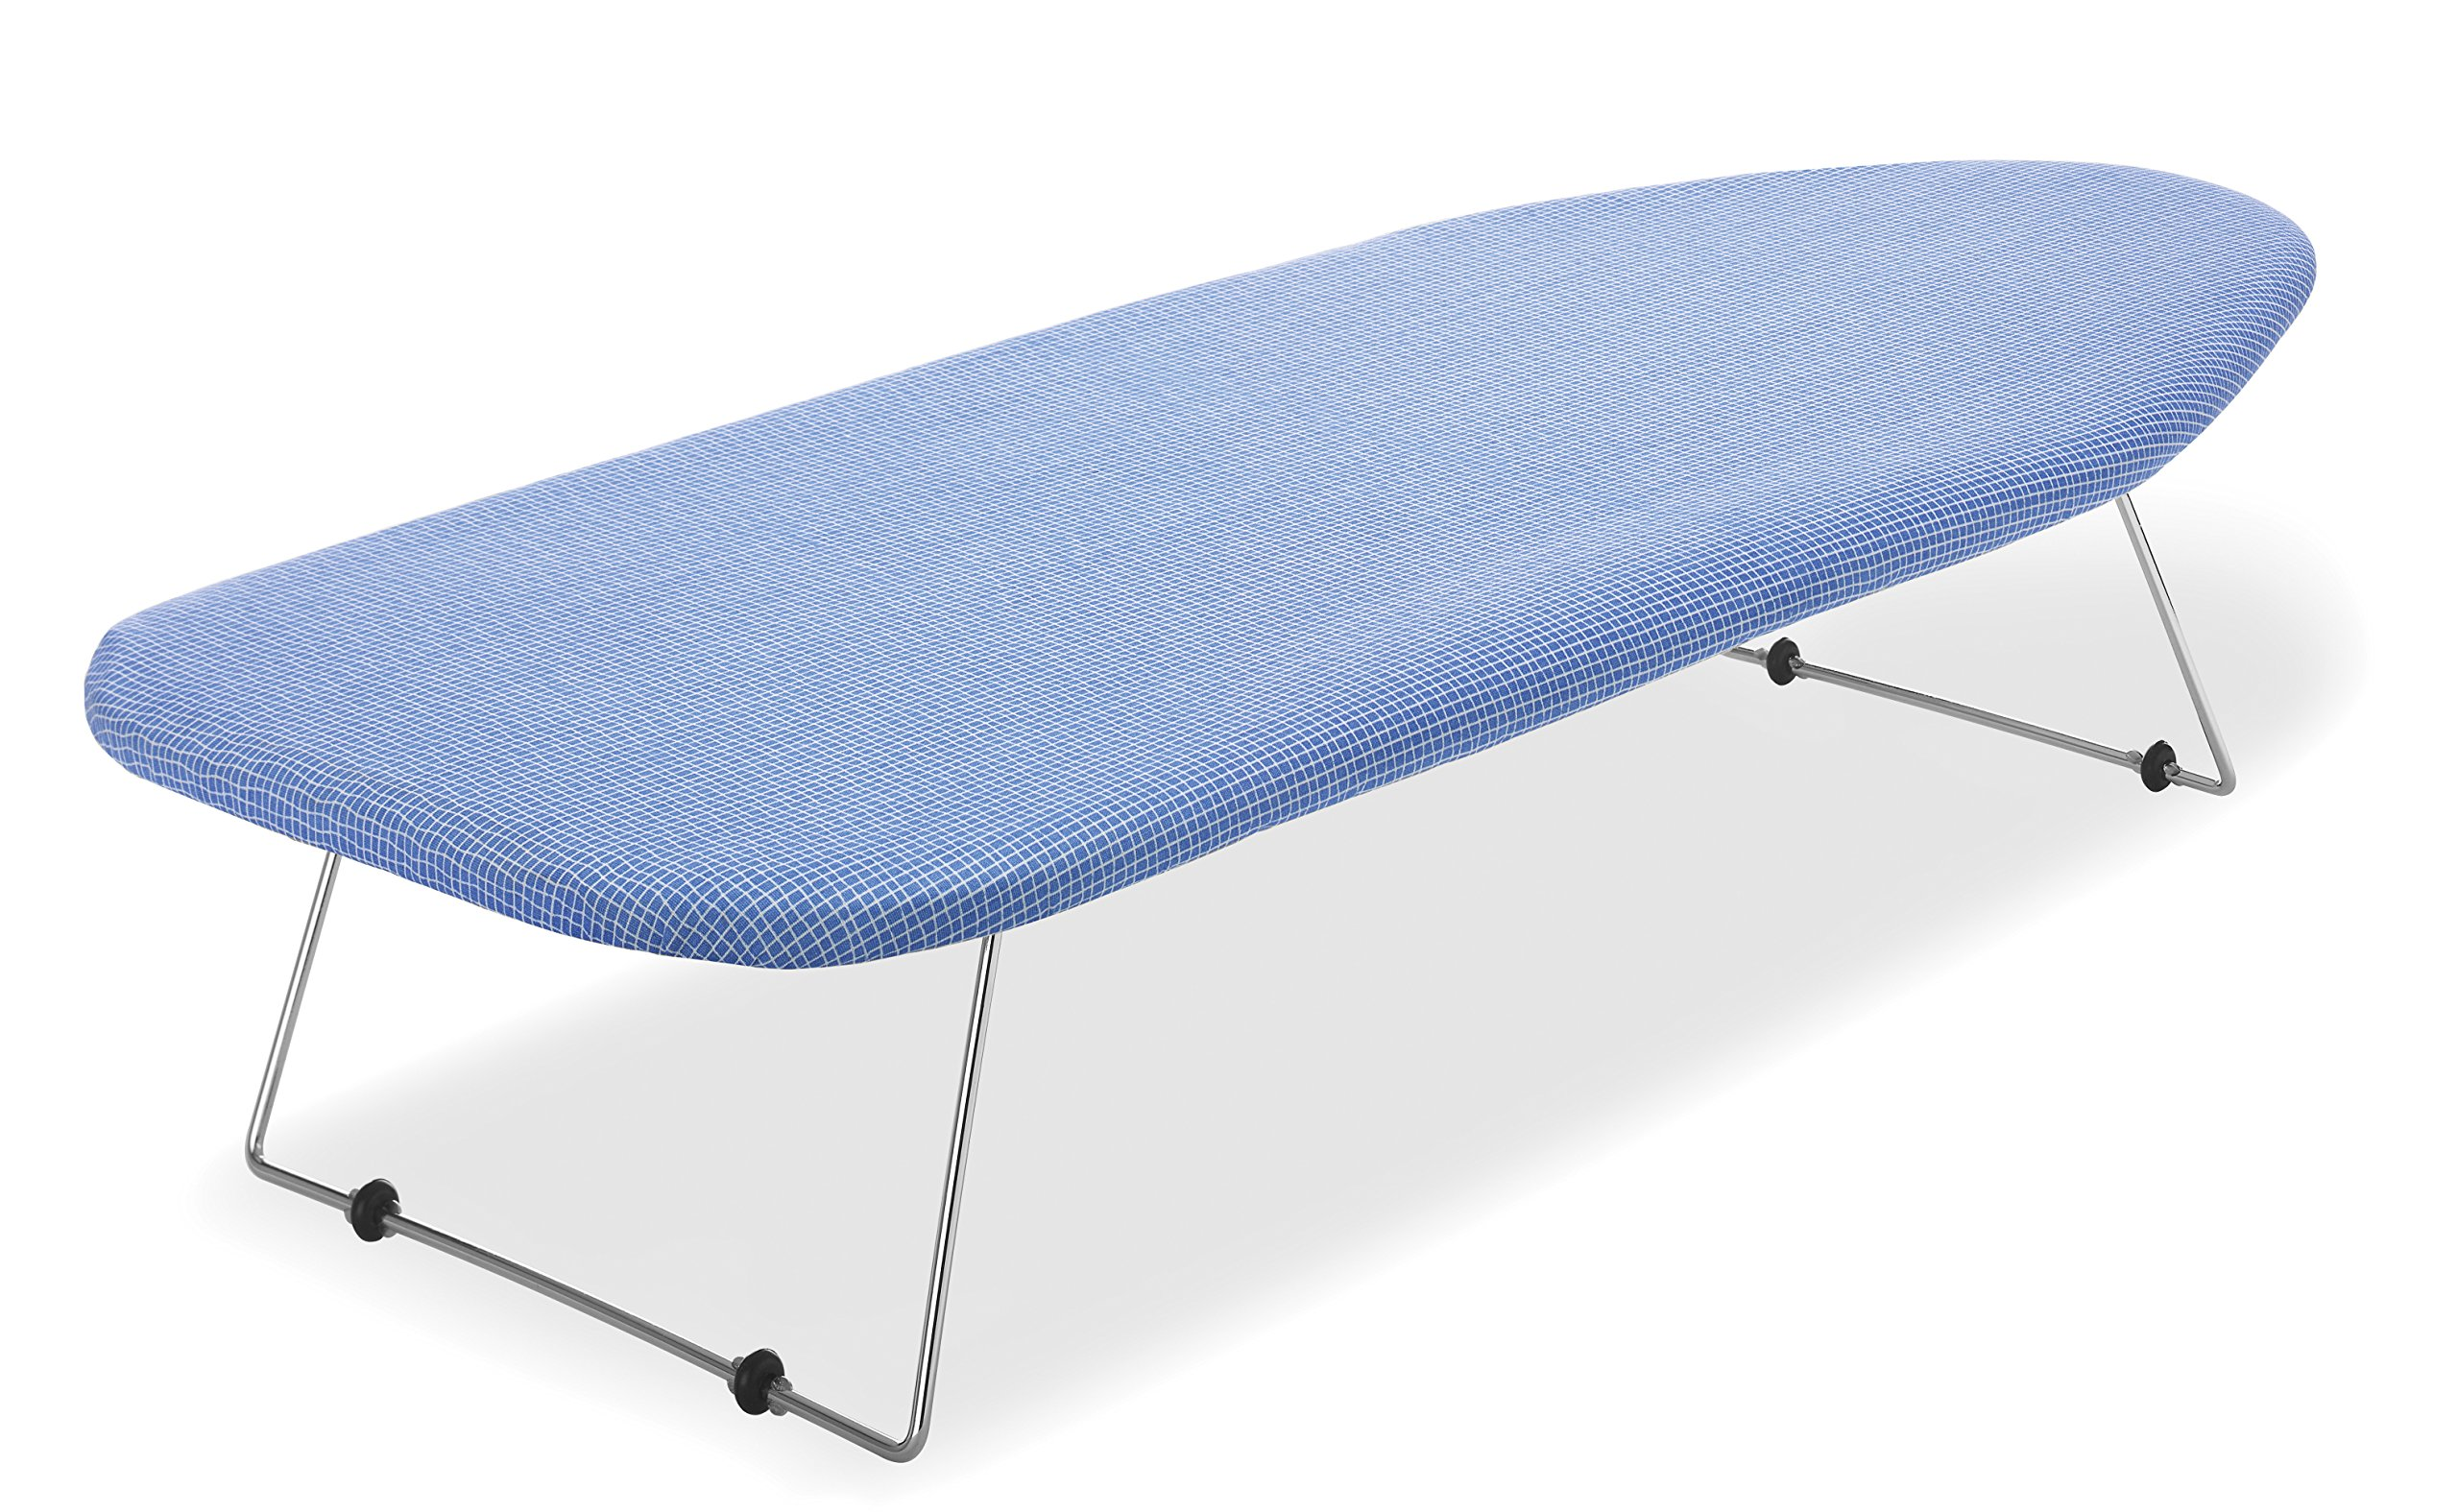 Whitmor Tabletop Ironing Board with Scorch Resistant Cover by Whitmor